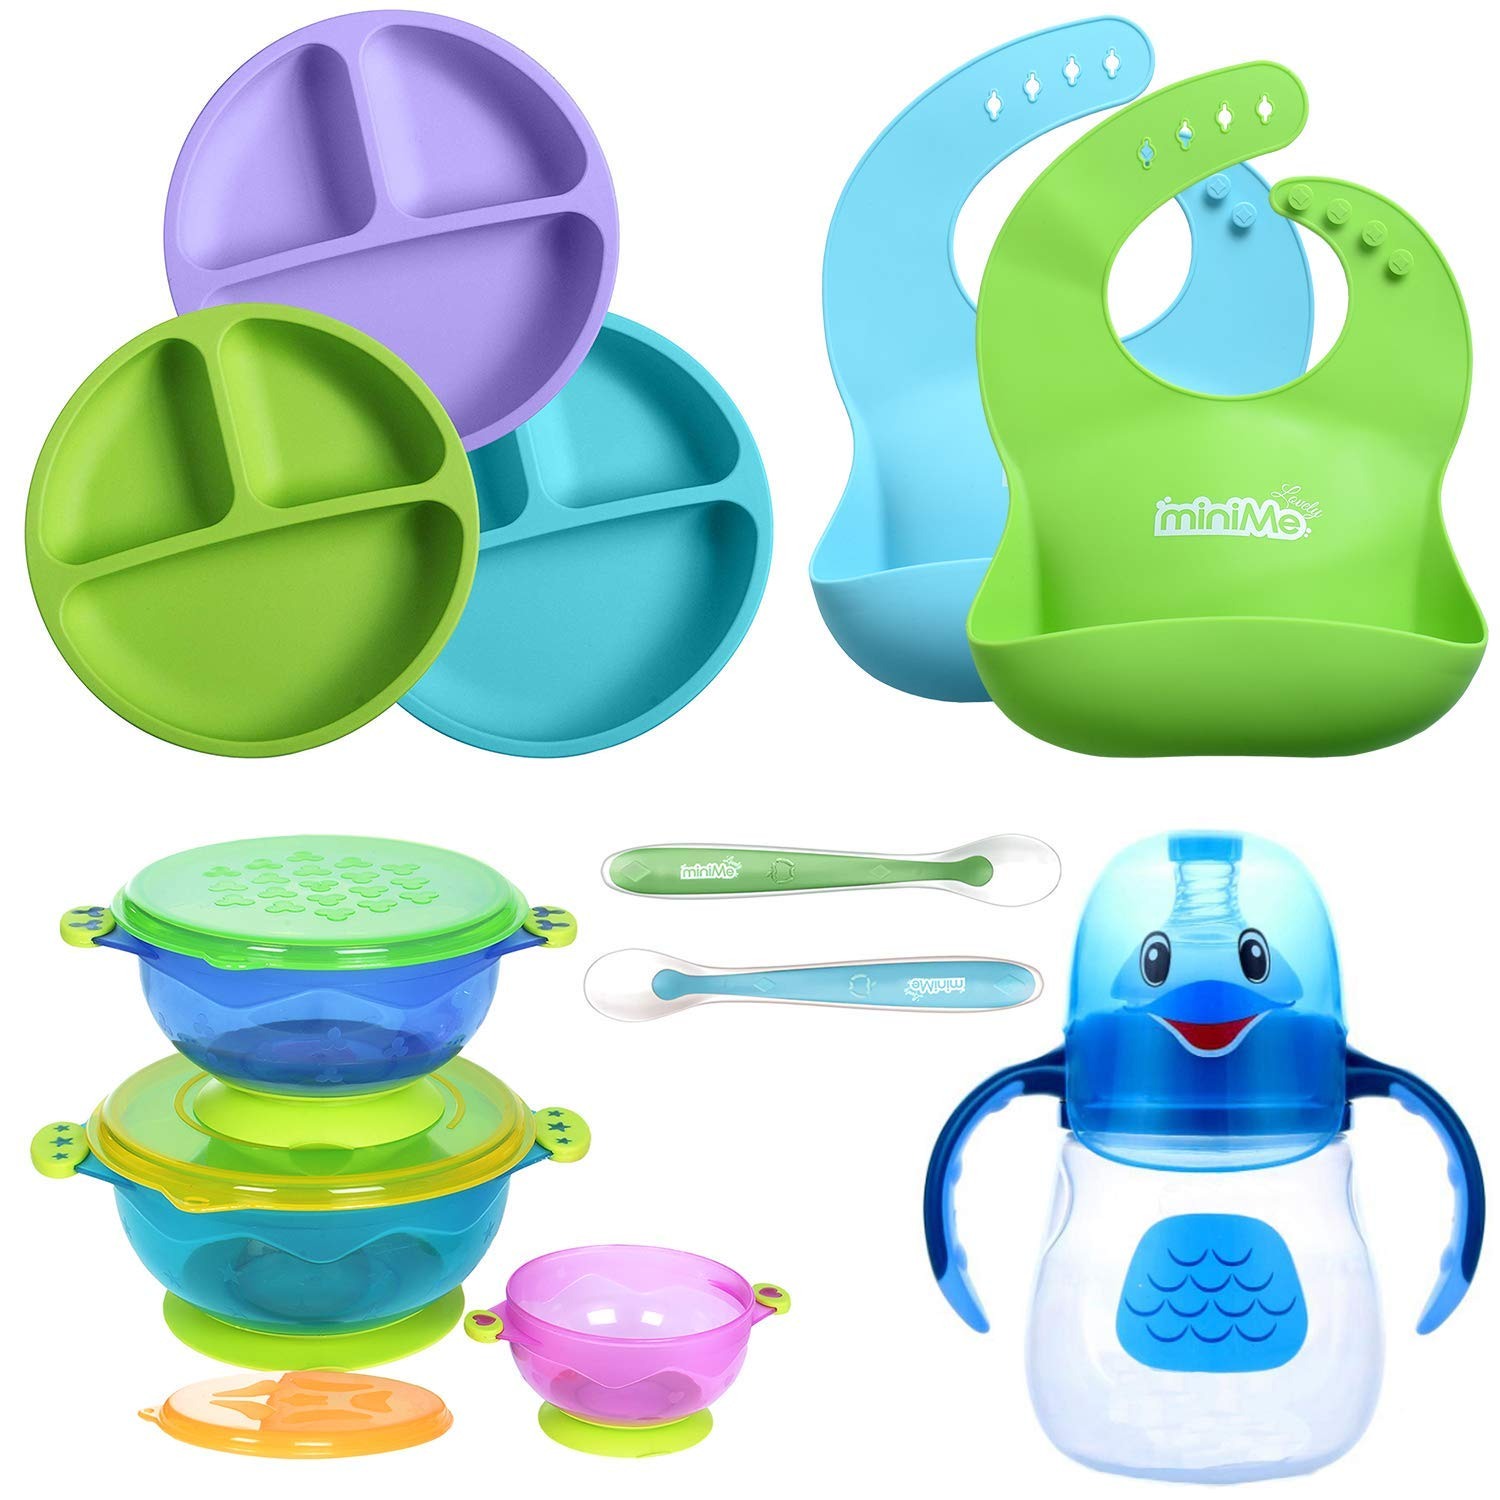 Lovely Minime Baby Feeding Set, Toddler Plates, Suction Bowls, Sippy Cup, Silicone Bibs, Soft Spoons by Lovely miniMe